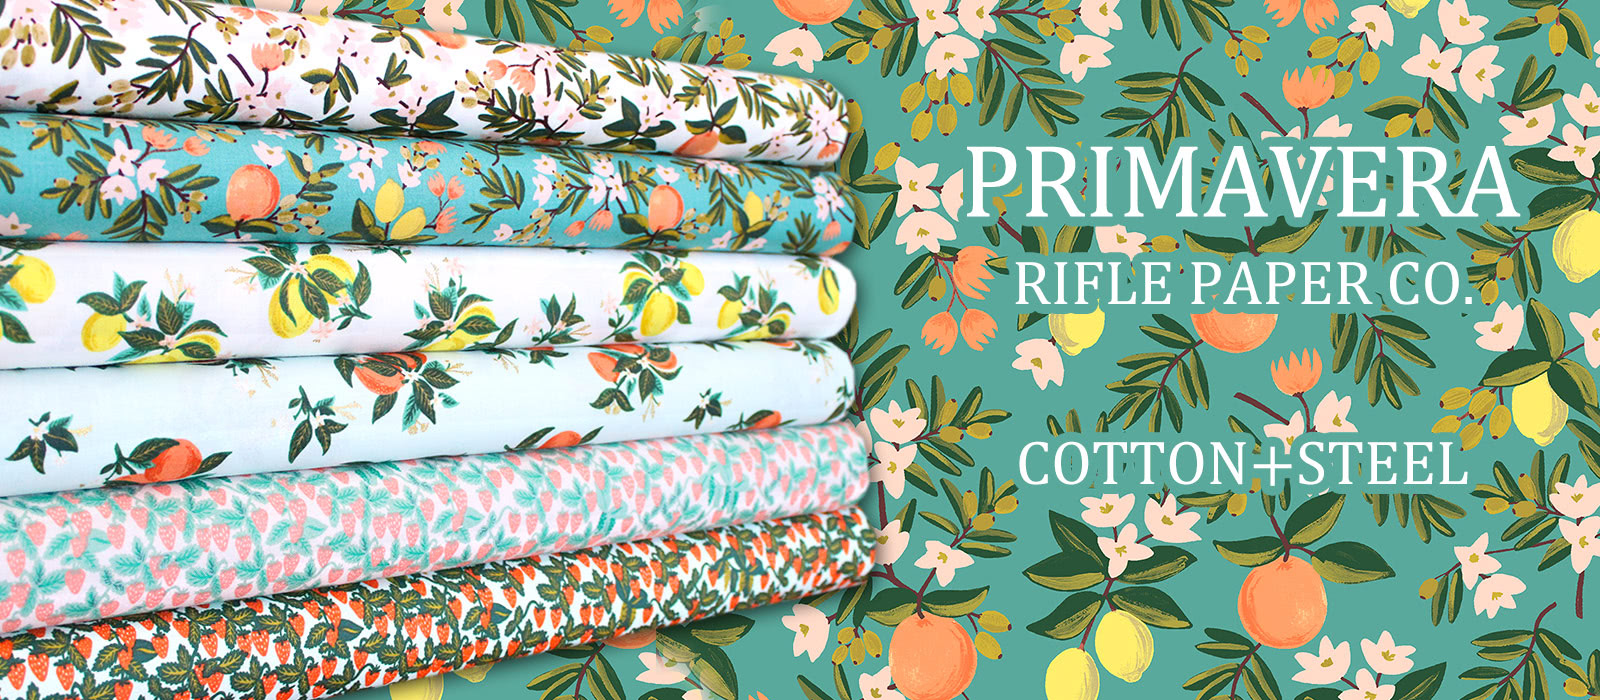 COTTON+STEEL Primavera Collection by Rifle Paper Co.